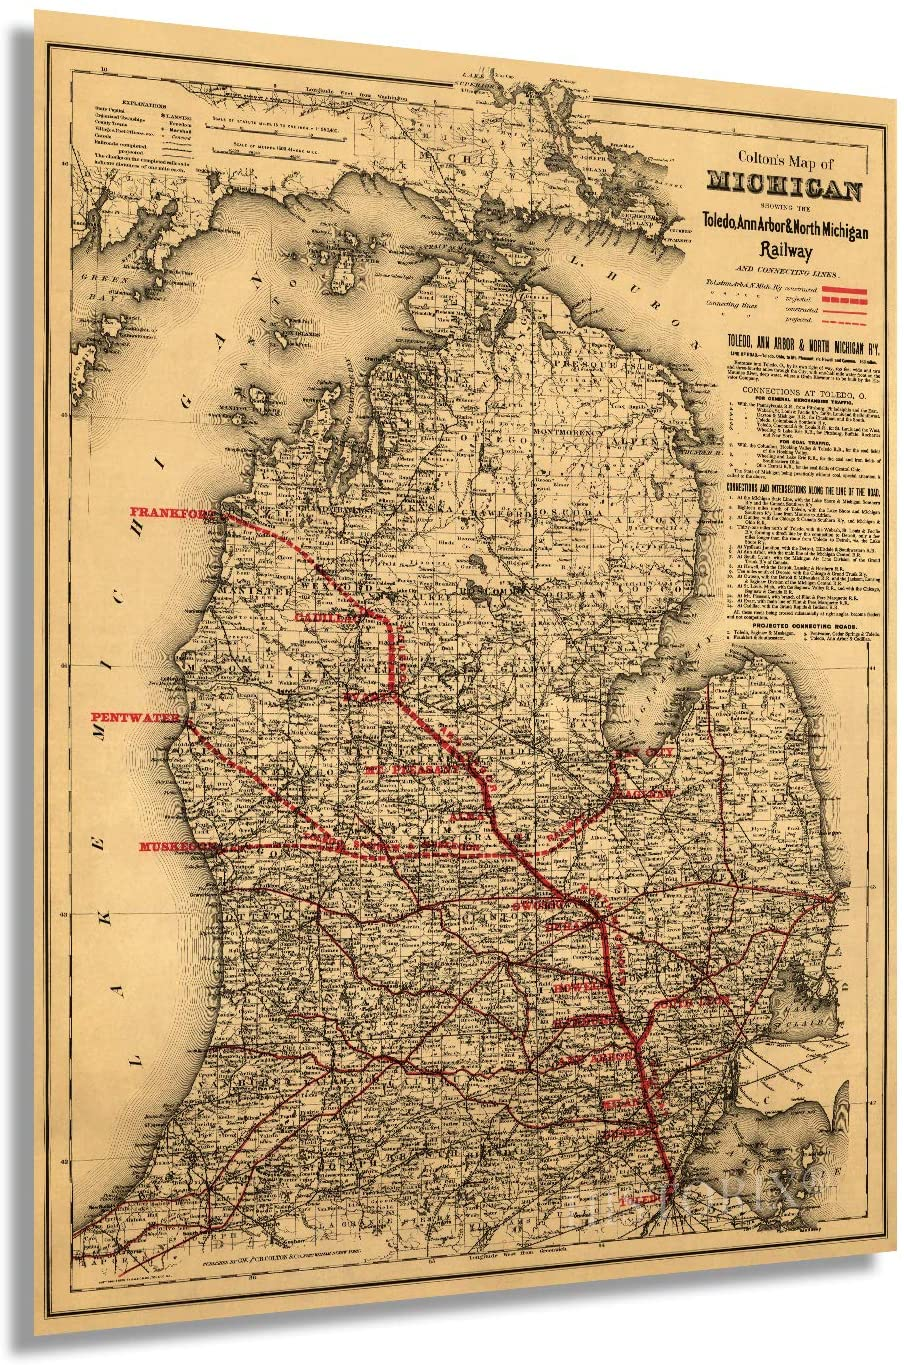 Historix 1886 Map of Michigan